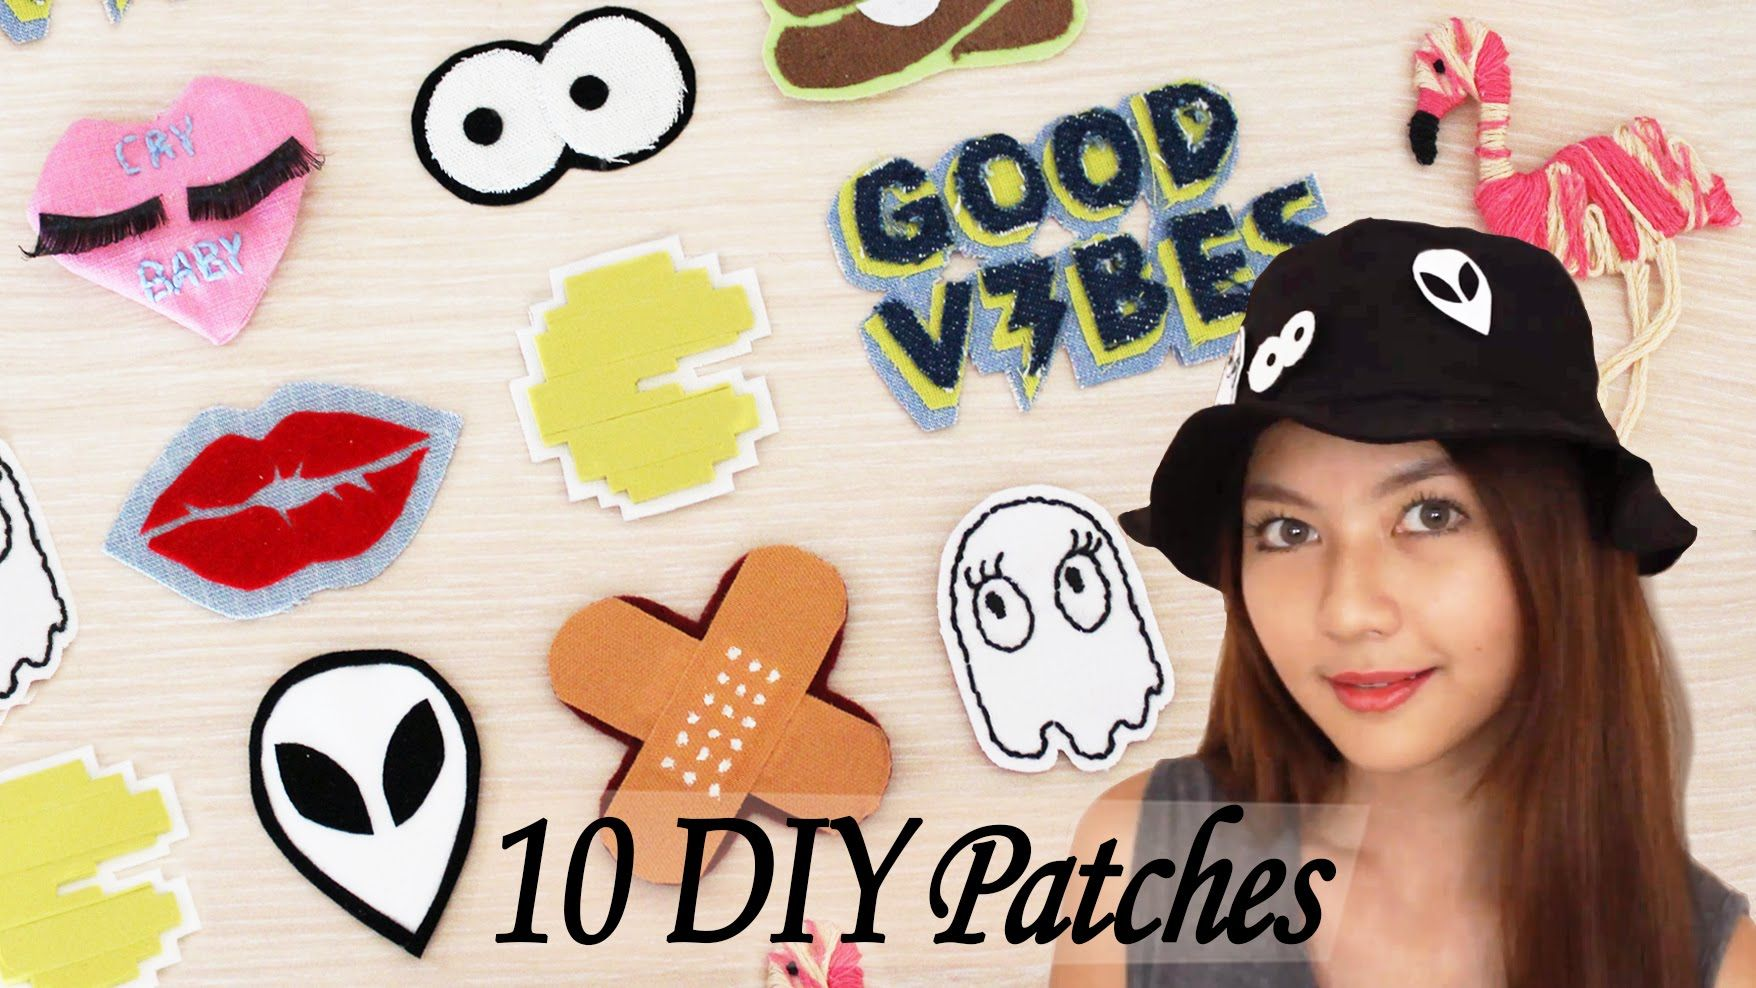 10 diy cute patches with 10 different techniques pinbadgepatch 10 diy cute patches with 10 different techniques pinbadgepatch for clothes solutioingenieria Gallery